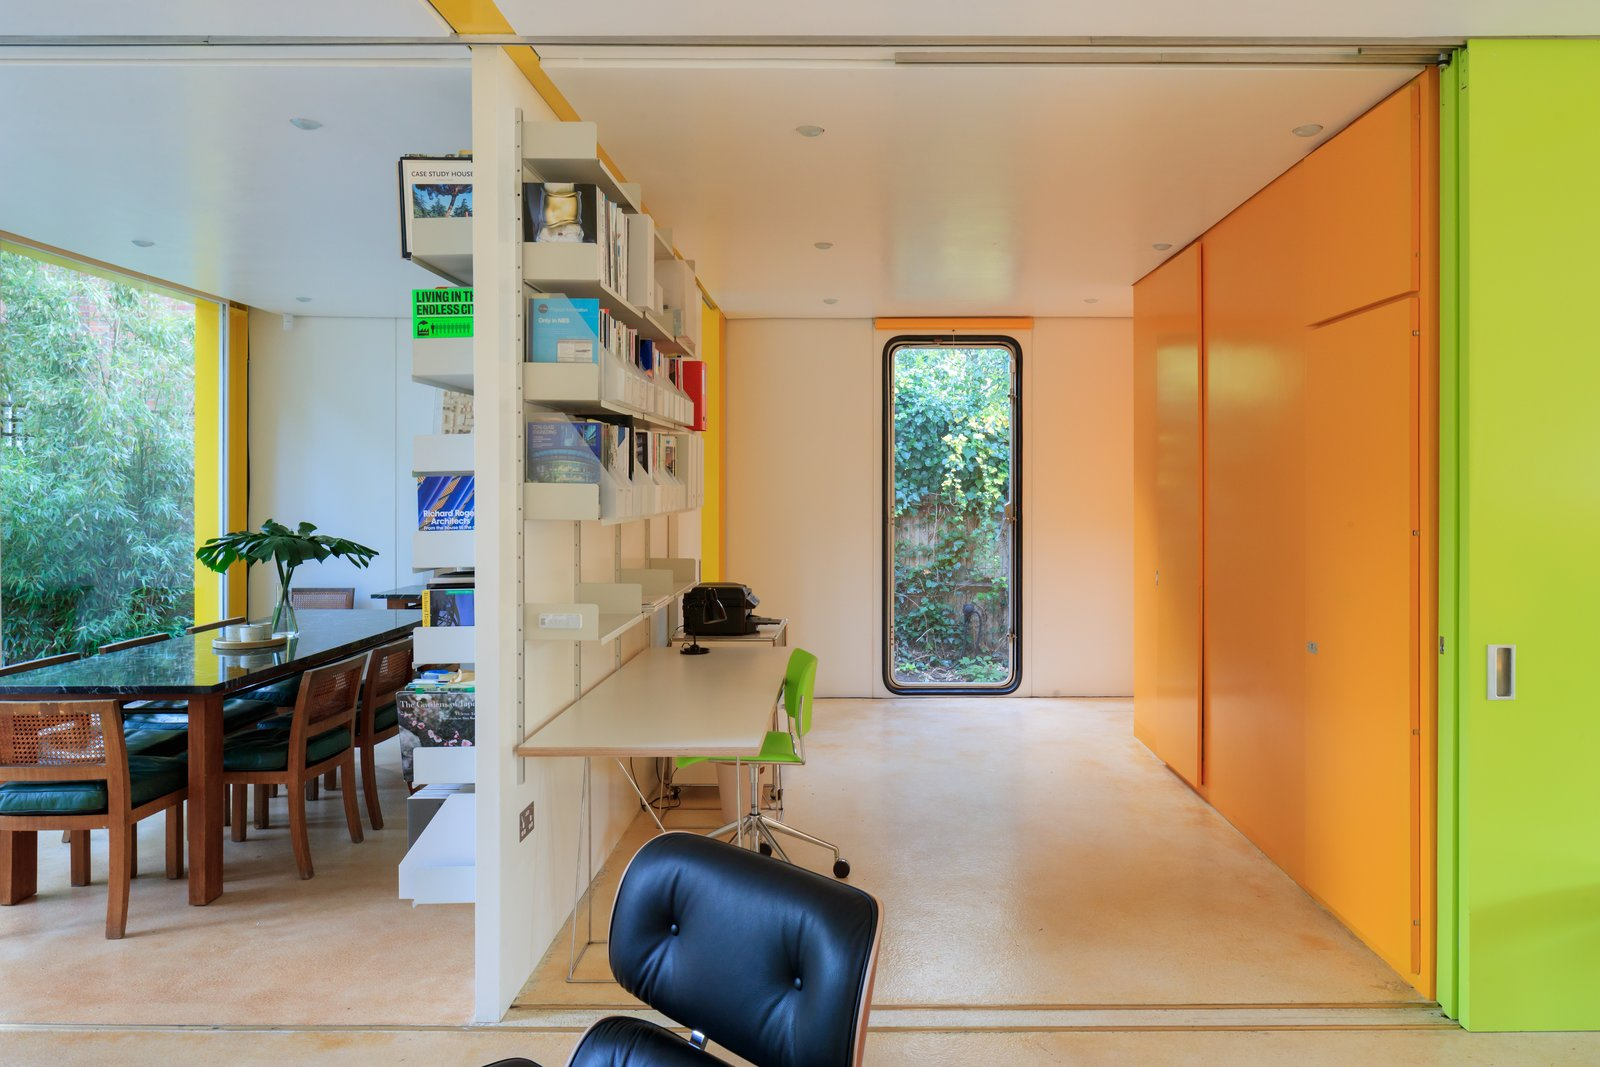 Office and Library Room Type  Photo 3 of 14 in Fully Renovated, Wimbledon House by Richard Rogers Hosts New Architecture Fellows in London